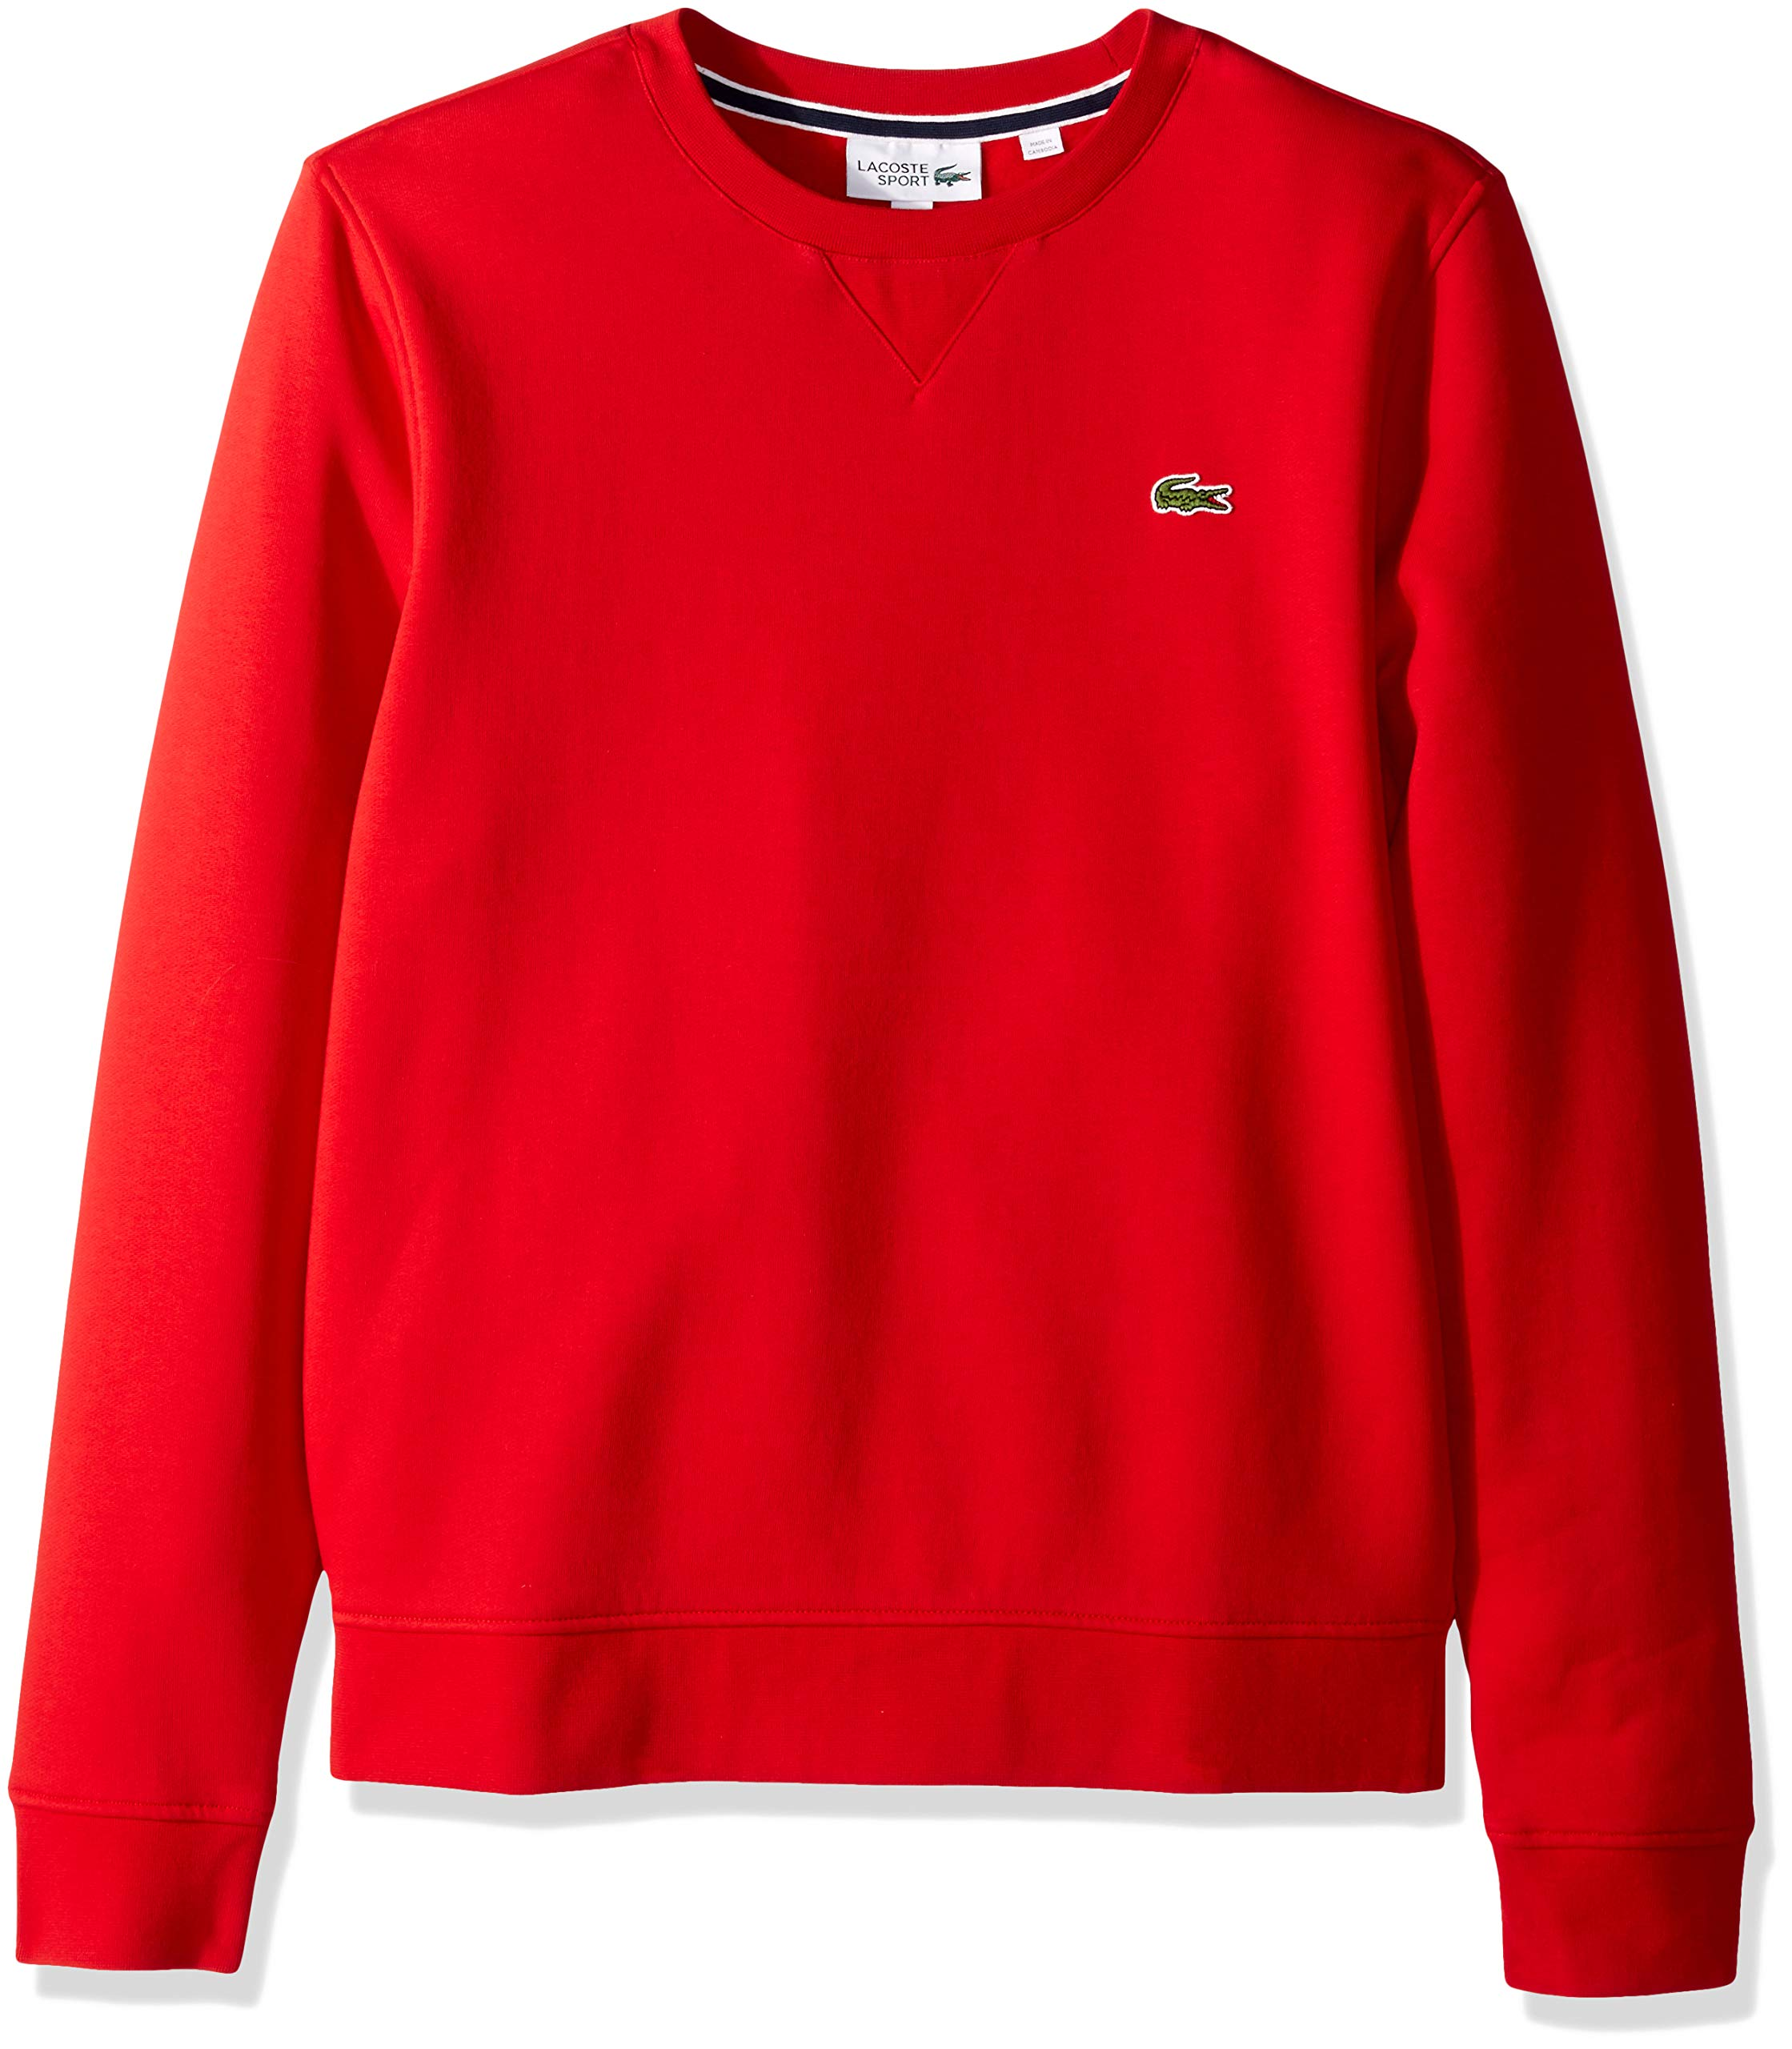 Lacoste Men's Brushed Fleece Crew Neck Sweatshirt, SH7613-51, Red, Small